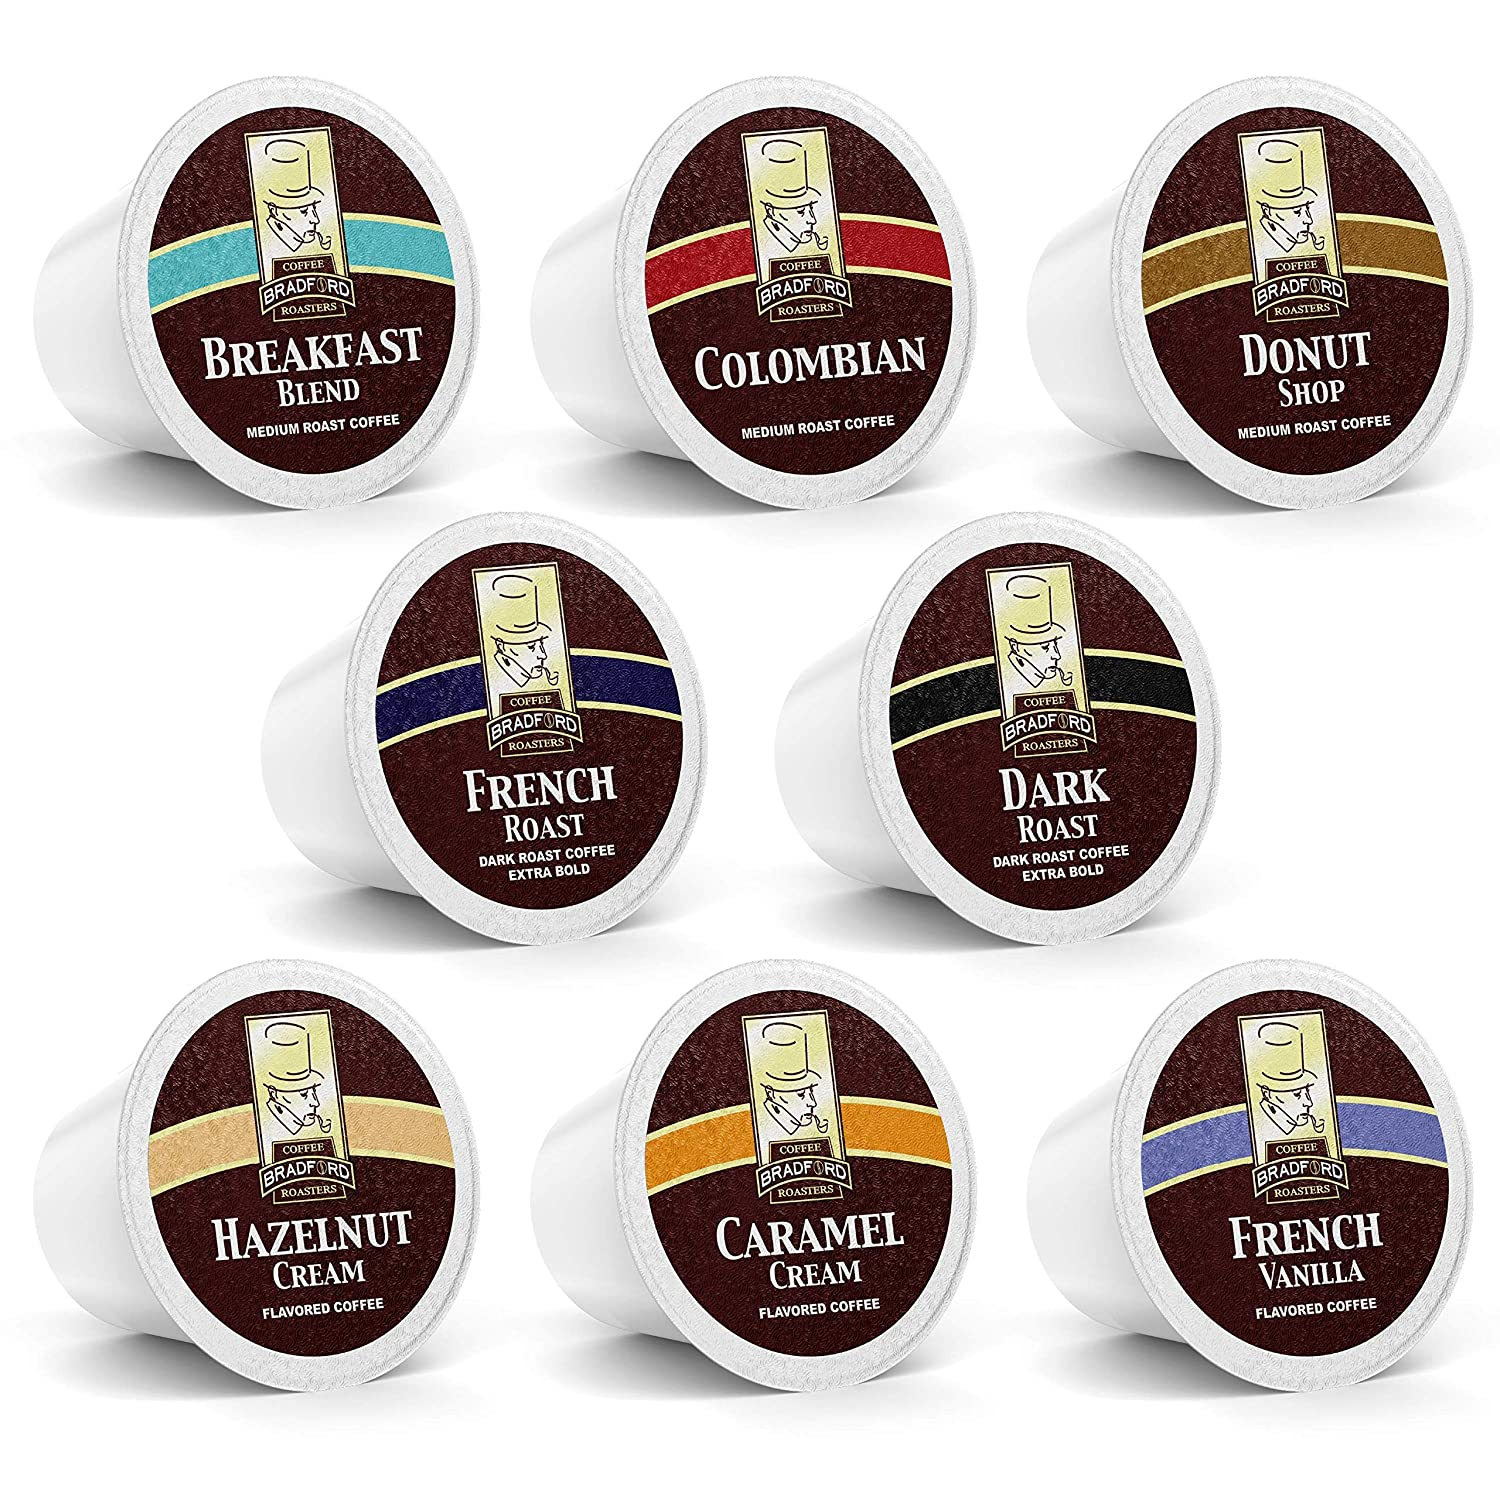 100ct Variety Pack for Keurig K-cups, 8 Assorted Single Cup Sampler 20% more coffee per cup by Bradford Coffee